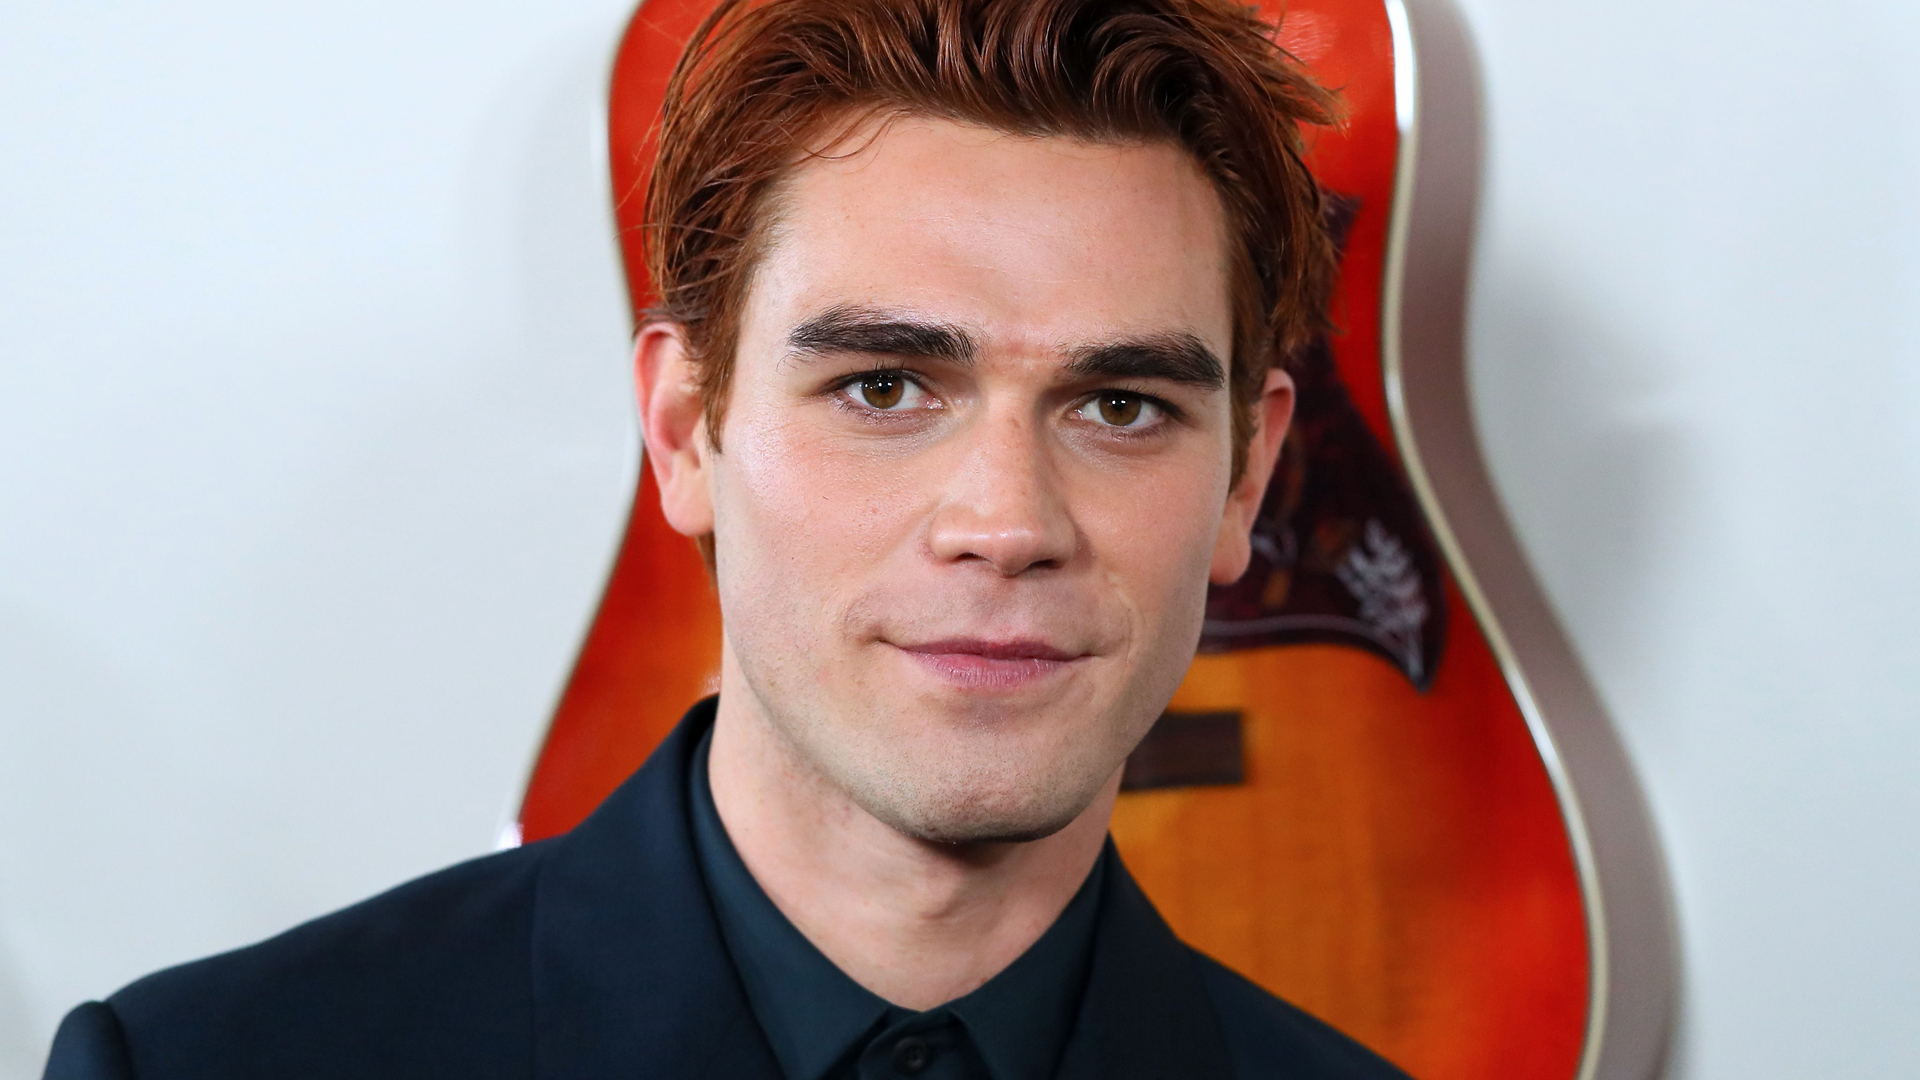 """'Riverdale' actor KJ Apa arrives for the special screening of Lionsgate's """"I Still Believe"""" at the Archlight in Hollywood, California on March 7, 2020."""